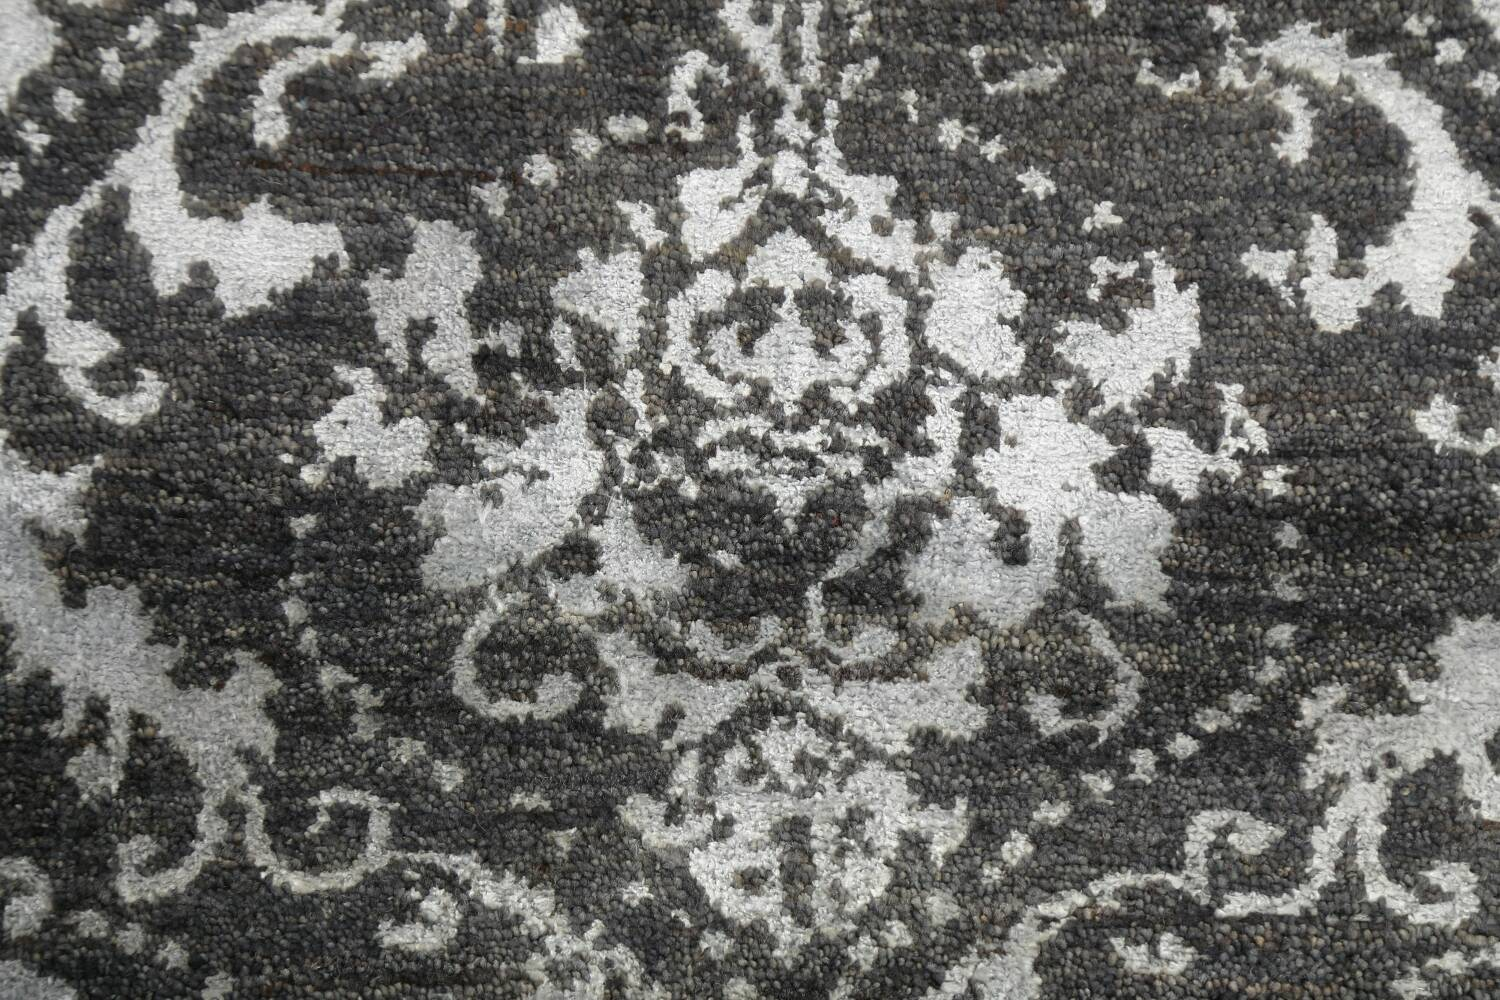 Vegetable Dye Distressed Abstract Oriental Area Rug 6x9 image 9